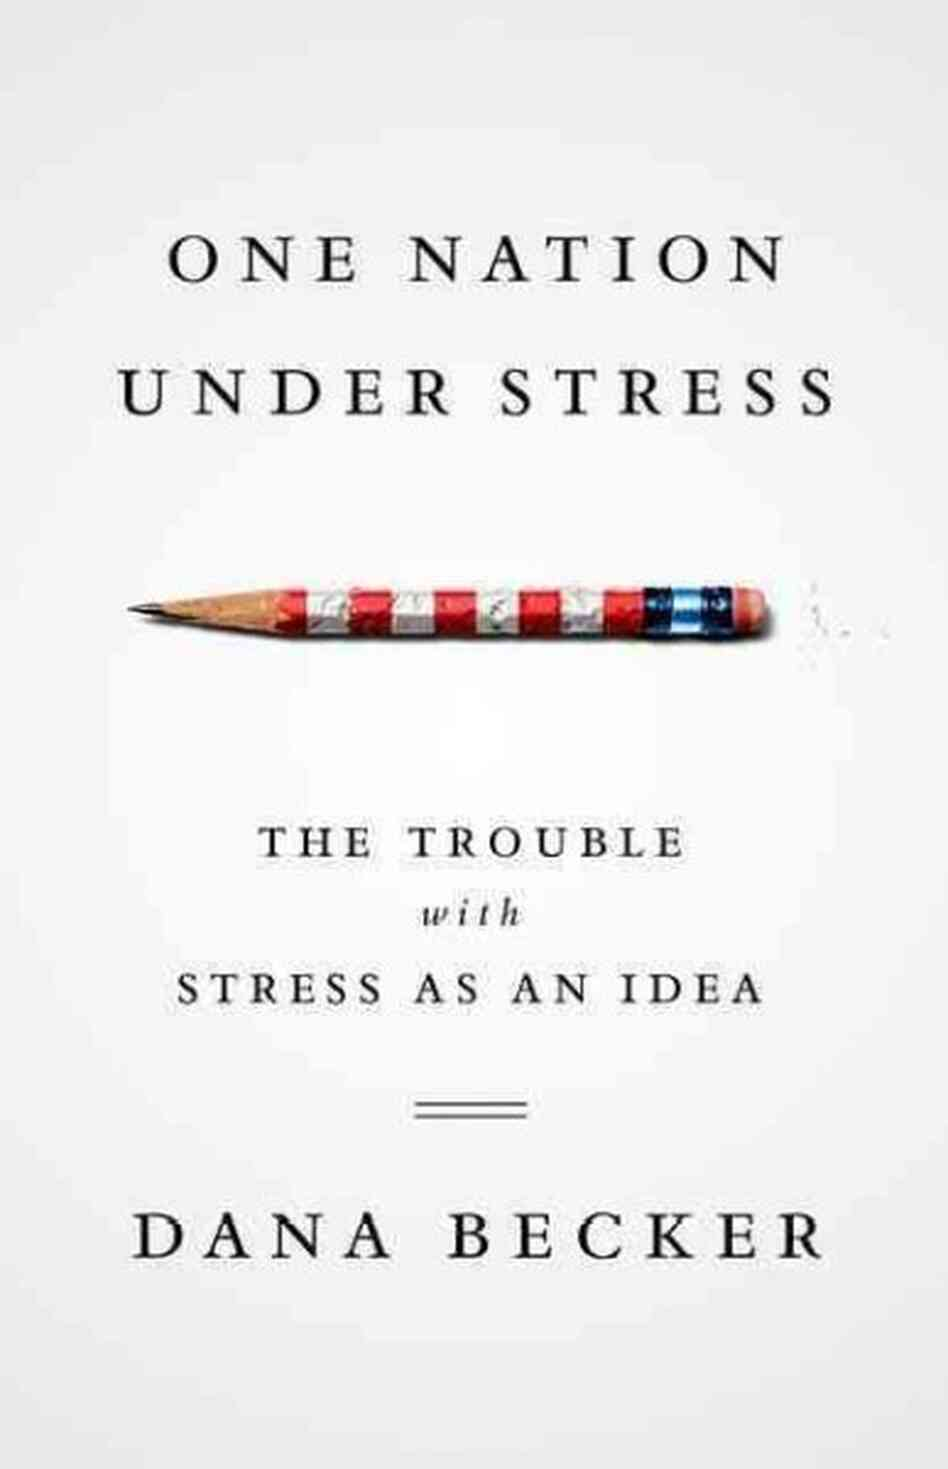 One Nation Under Stress